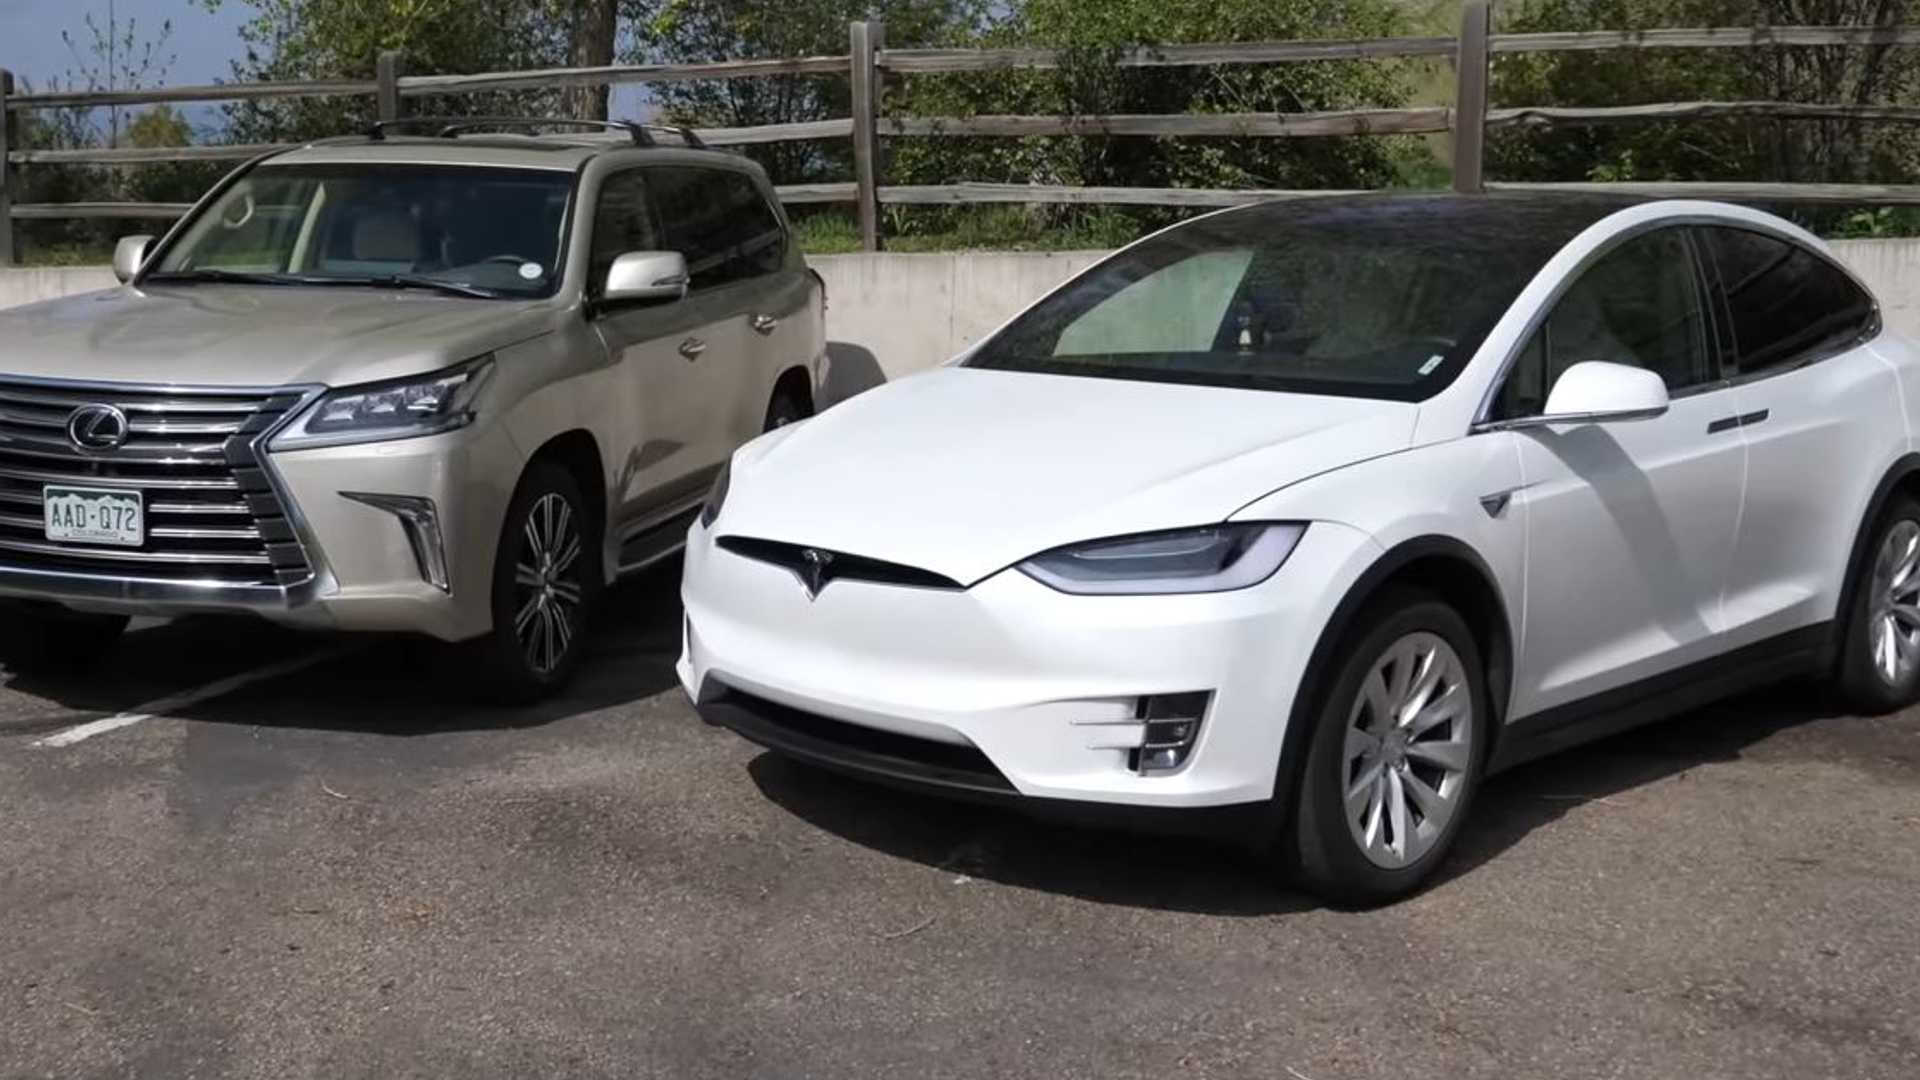 Electric Or Gas Suv For Towing Tesla Model X Vs Lexus Lx